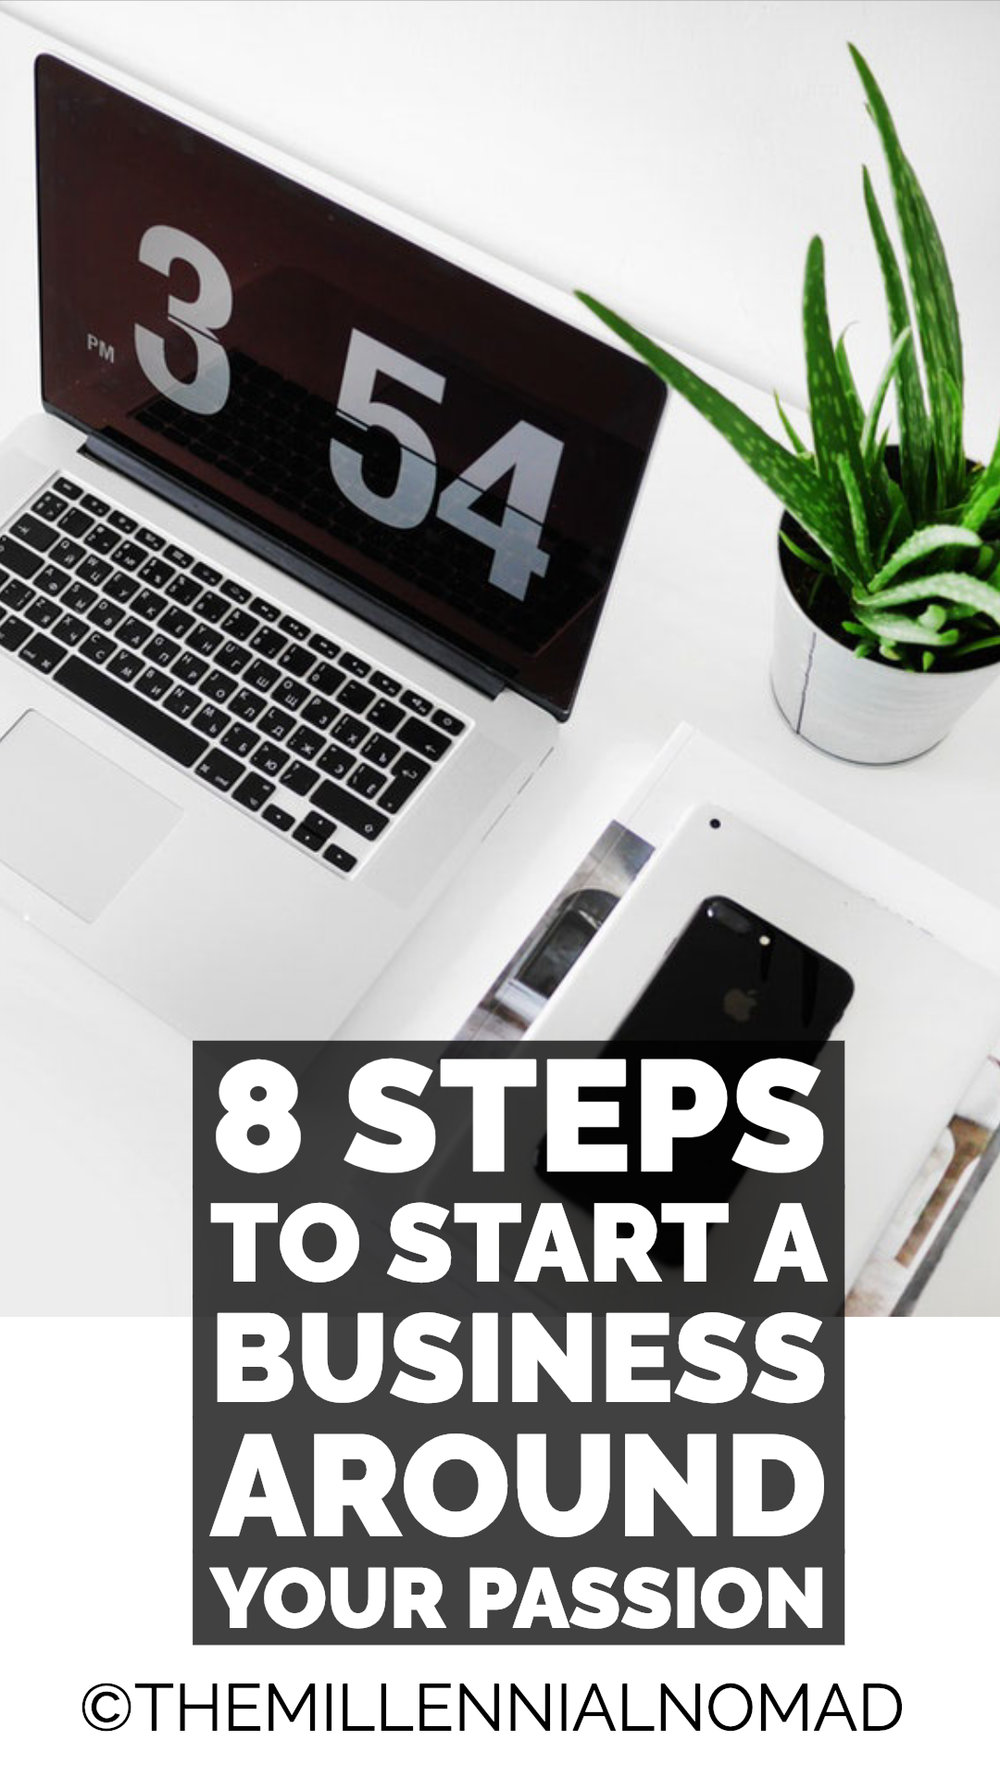 It's never been easier to start an online business and earn a living online than today. If you check on Instagram or youtube, you will notice more and more millennials turning their passion into profit thanks to the Internet.  You can either become a freelancer or run your own online business. But the most important is that you become financially and location independent.  So if you are still thinking about how to start your side hustle, let me share with you these 8 tips.